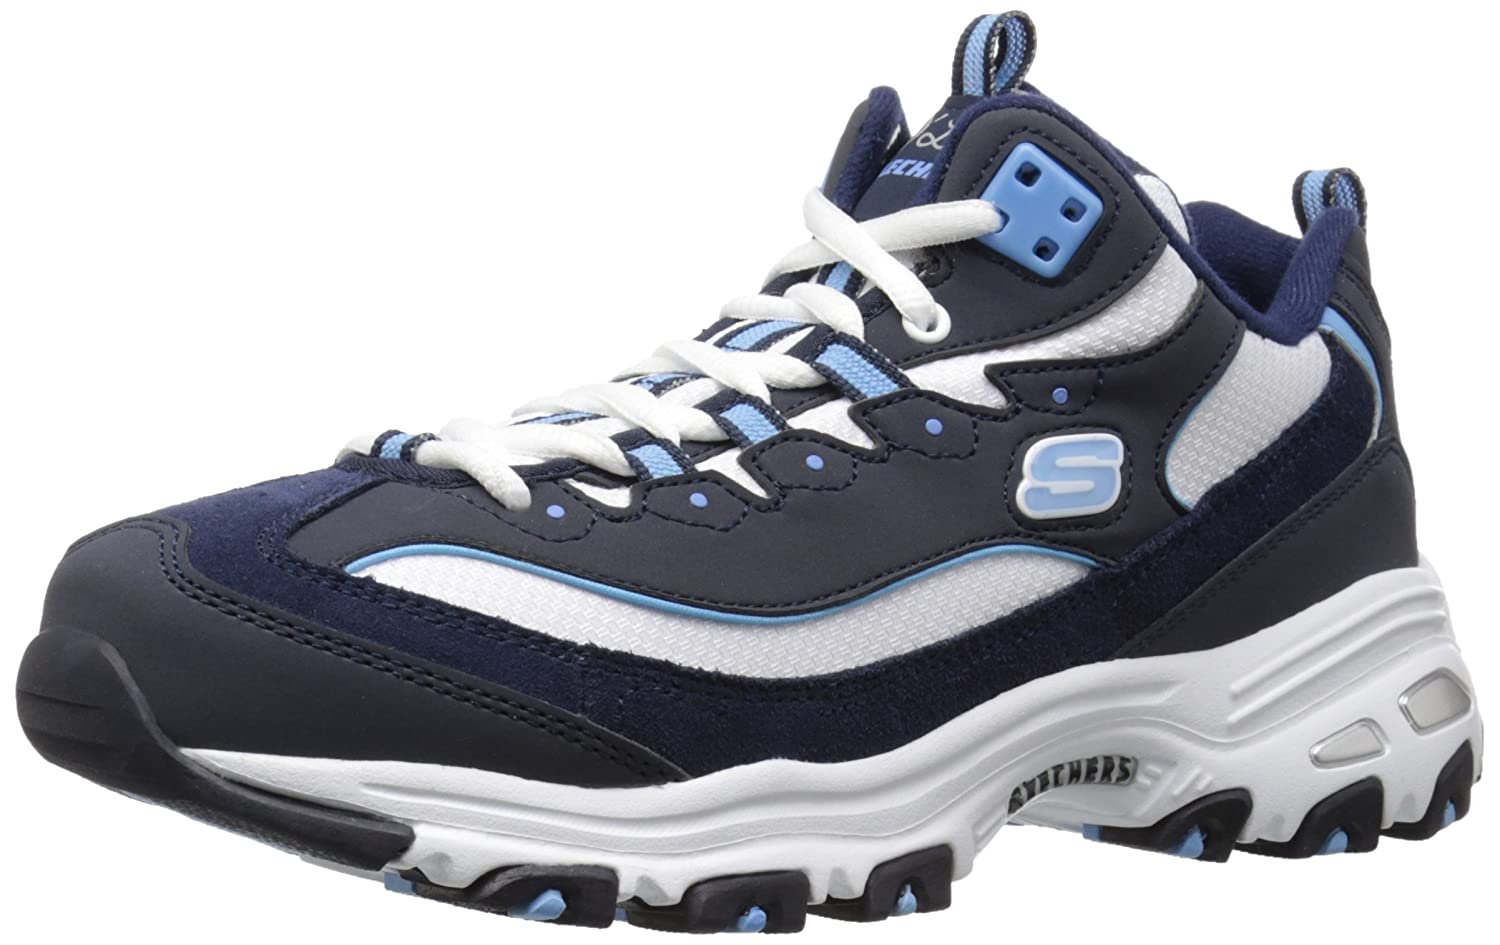 Skechers D'Lites-Biggest Fan, Zapatillas de Deporte para Mujer Navy/White/Light/Blue